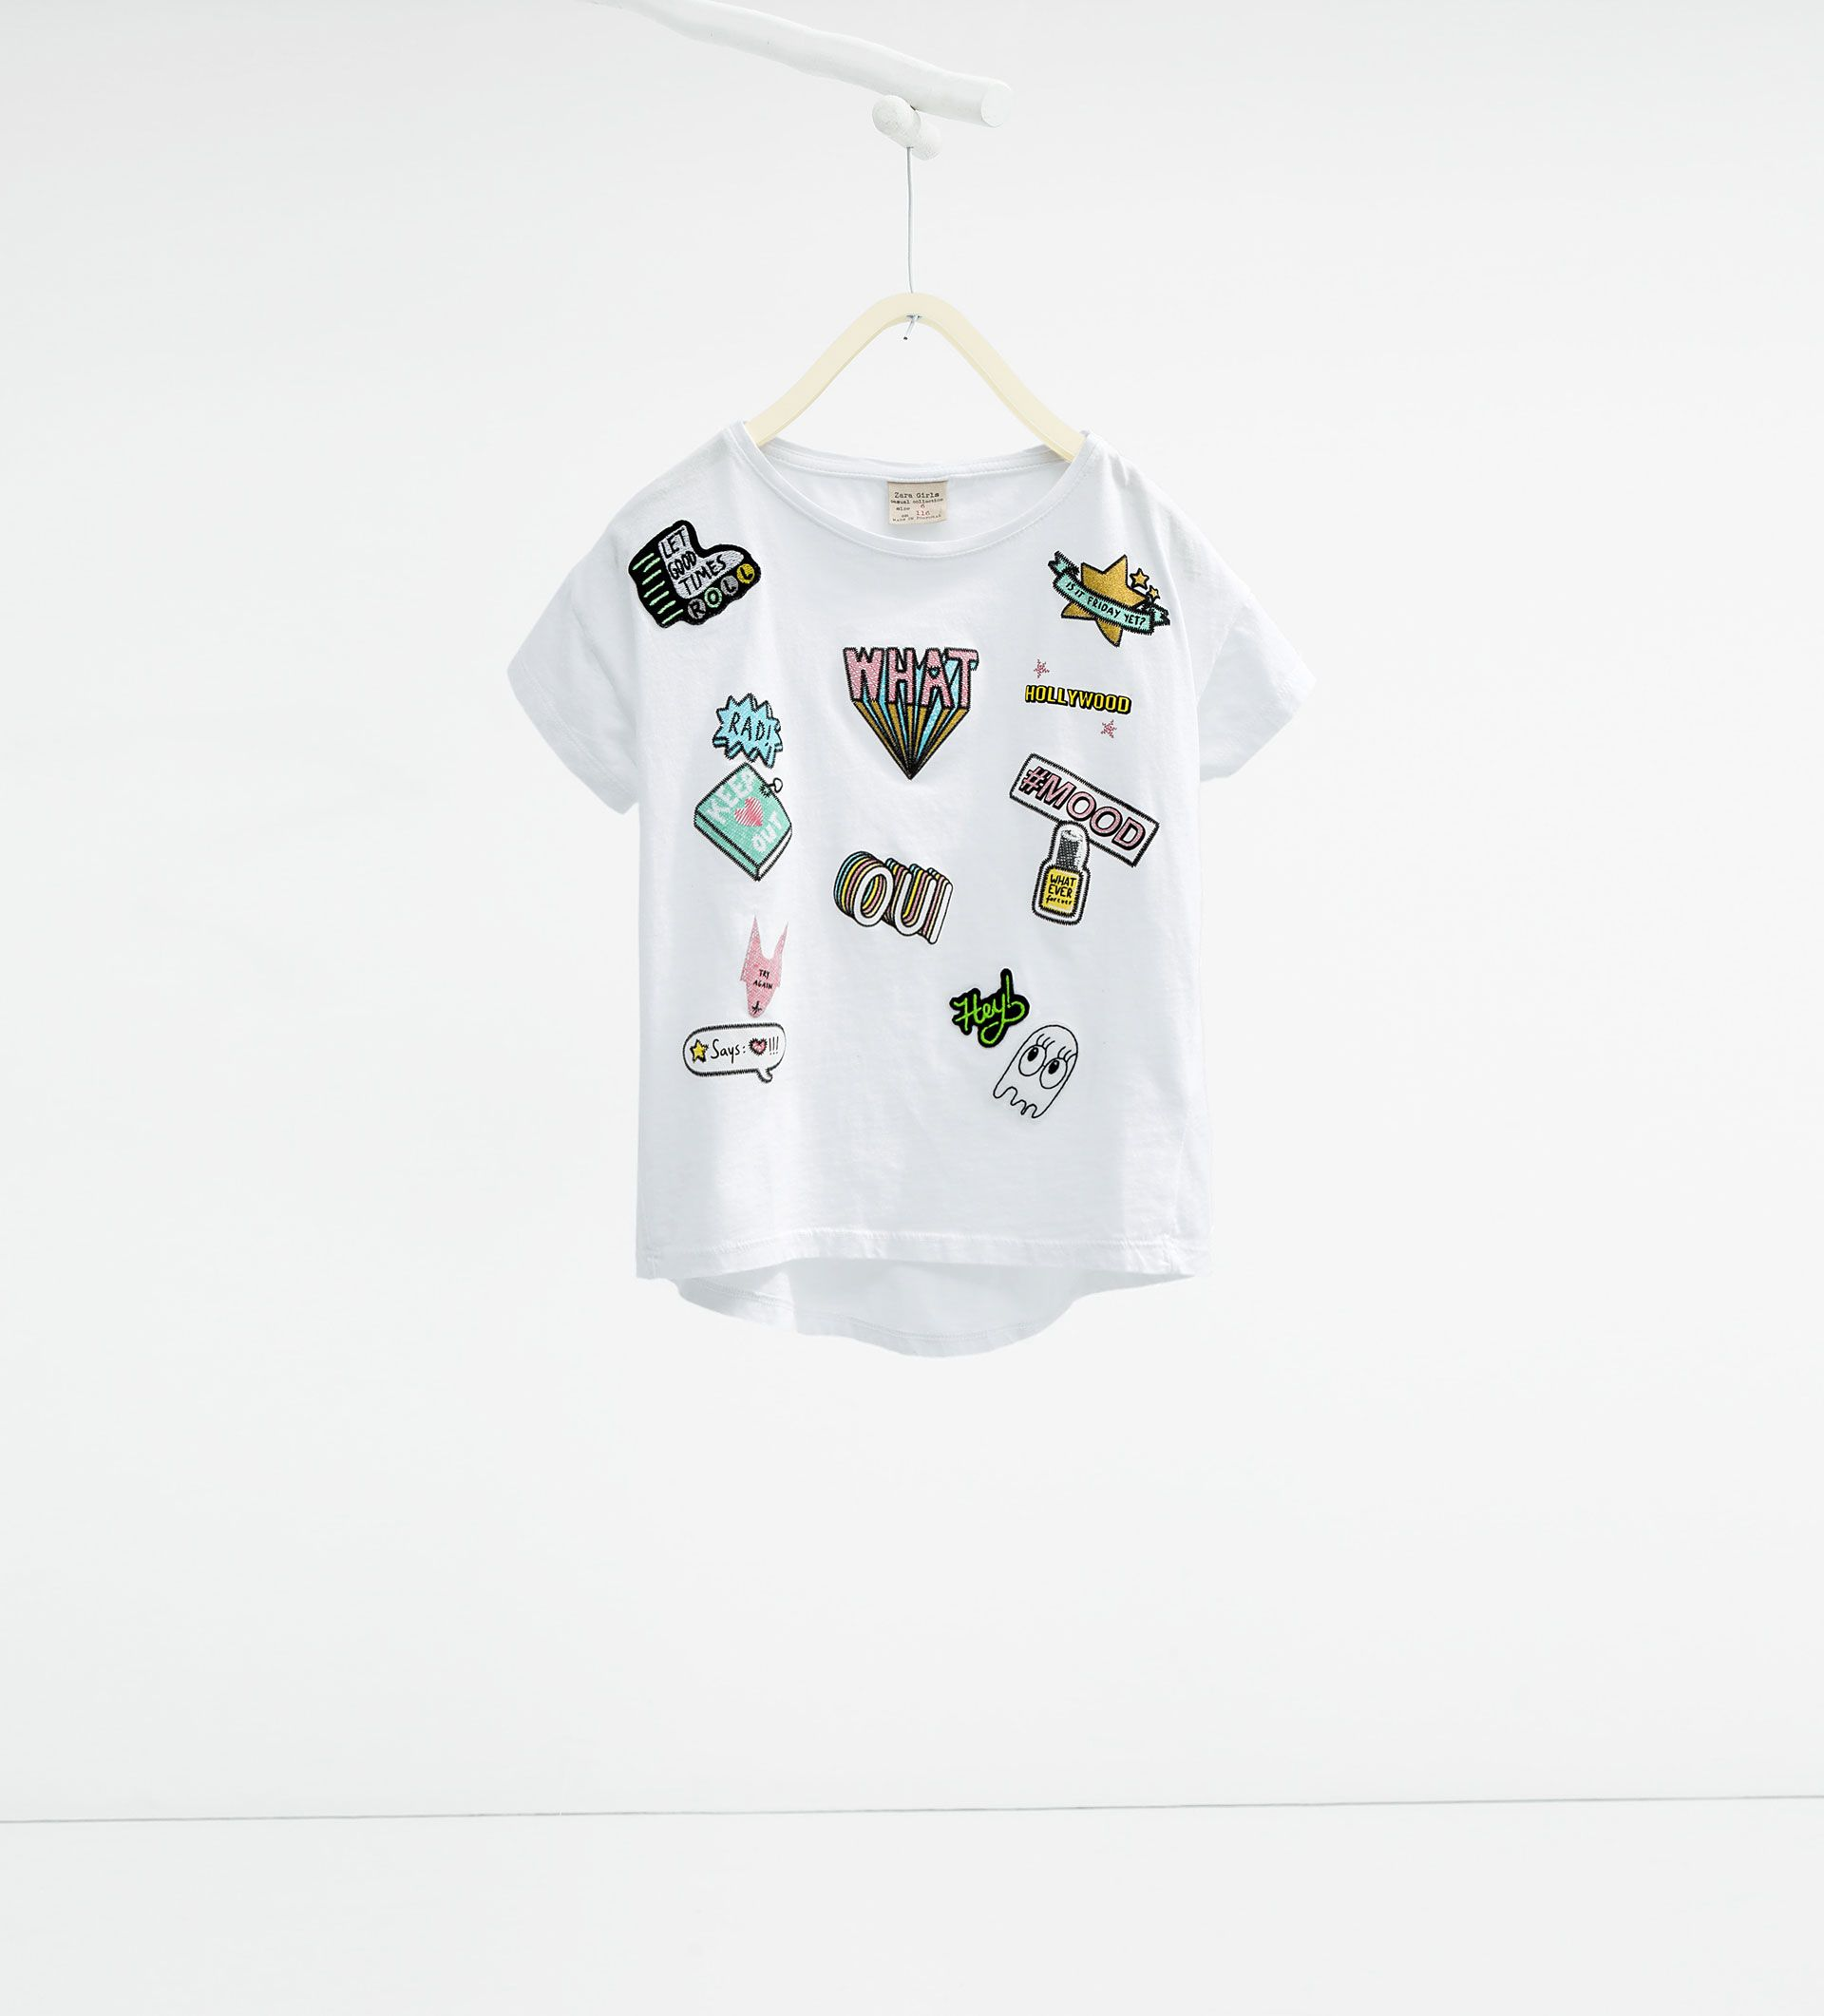 654bb66dfd2 Patches T - shirt - View All - T - SHIRTS - GIRL